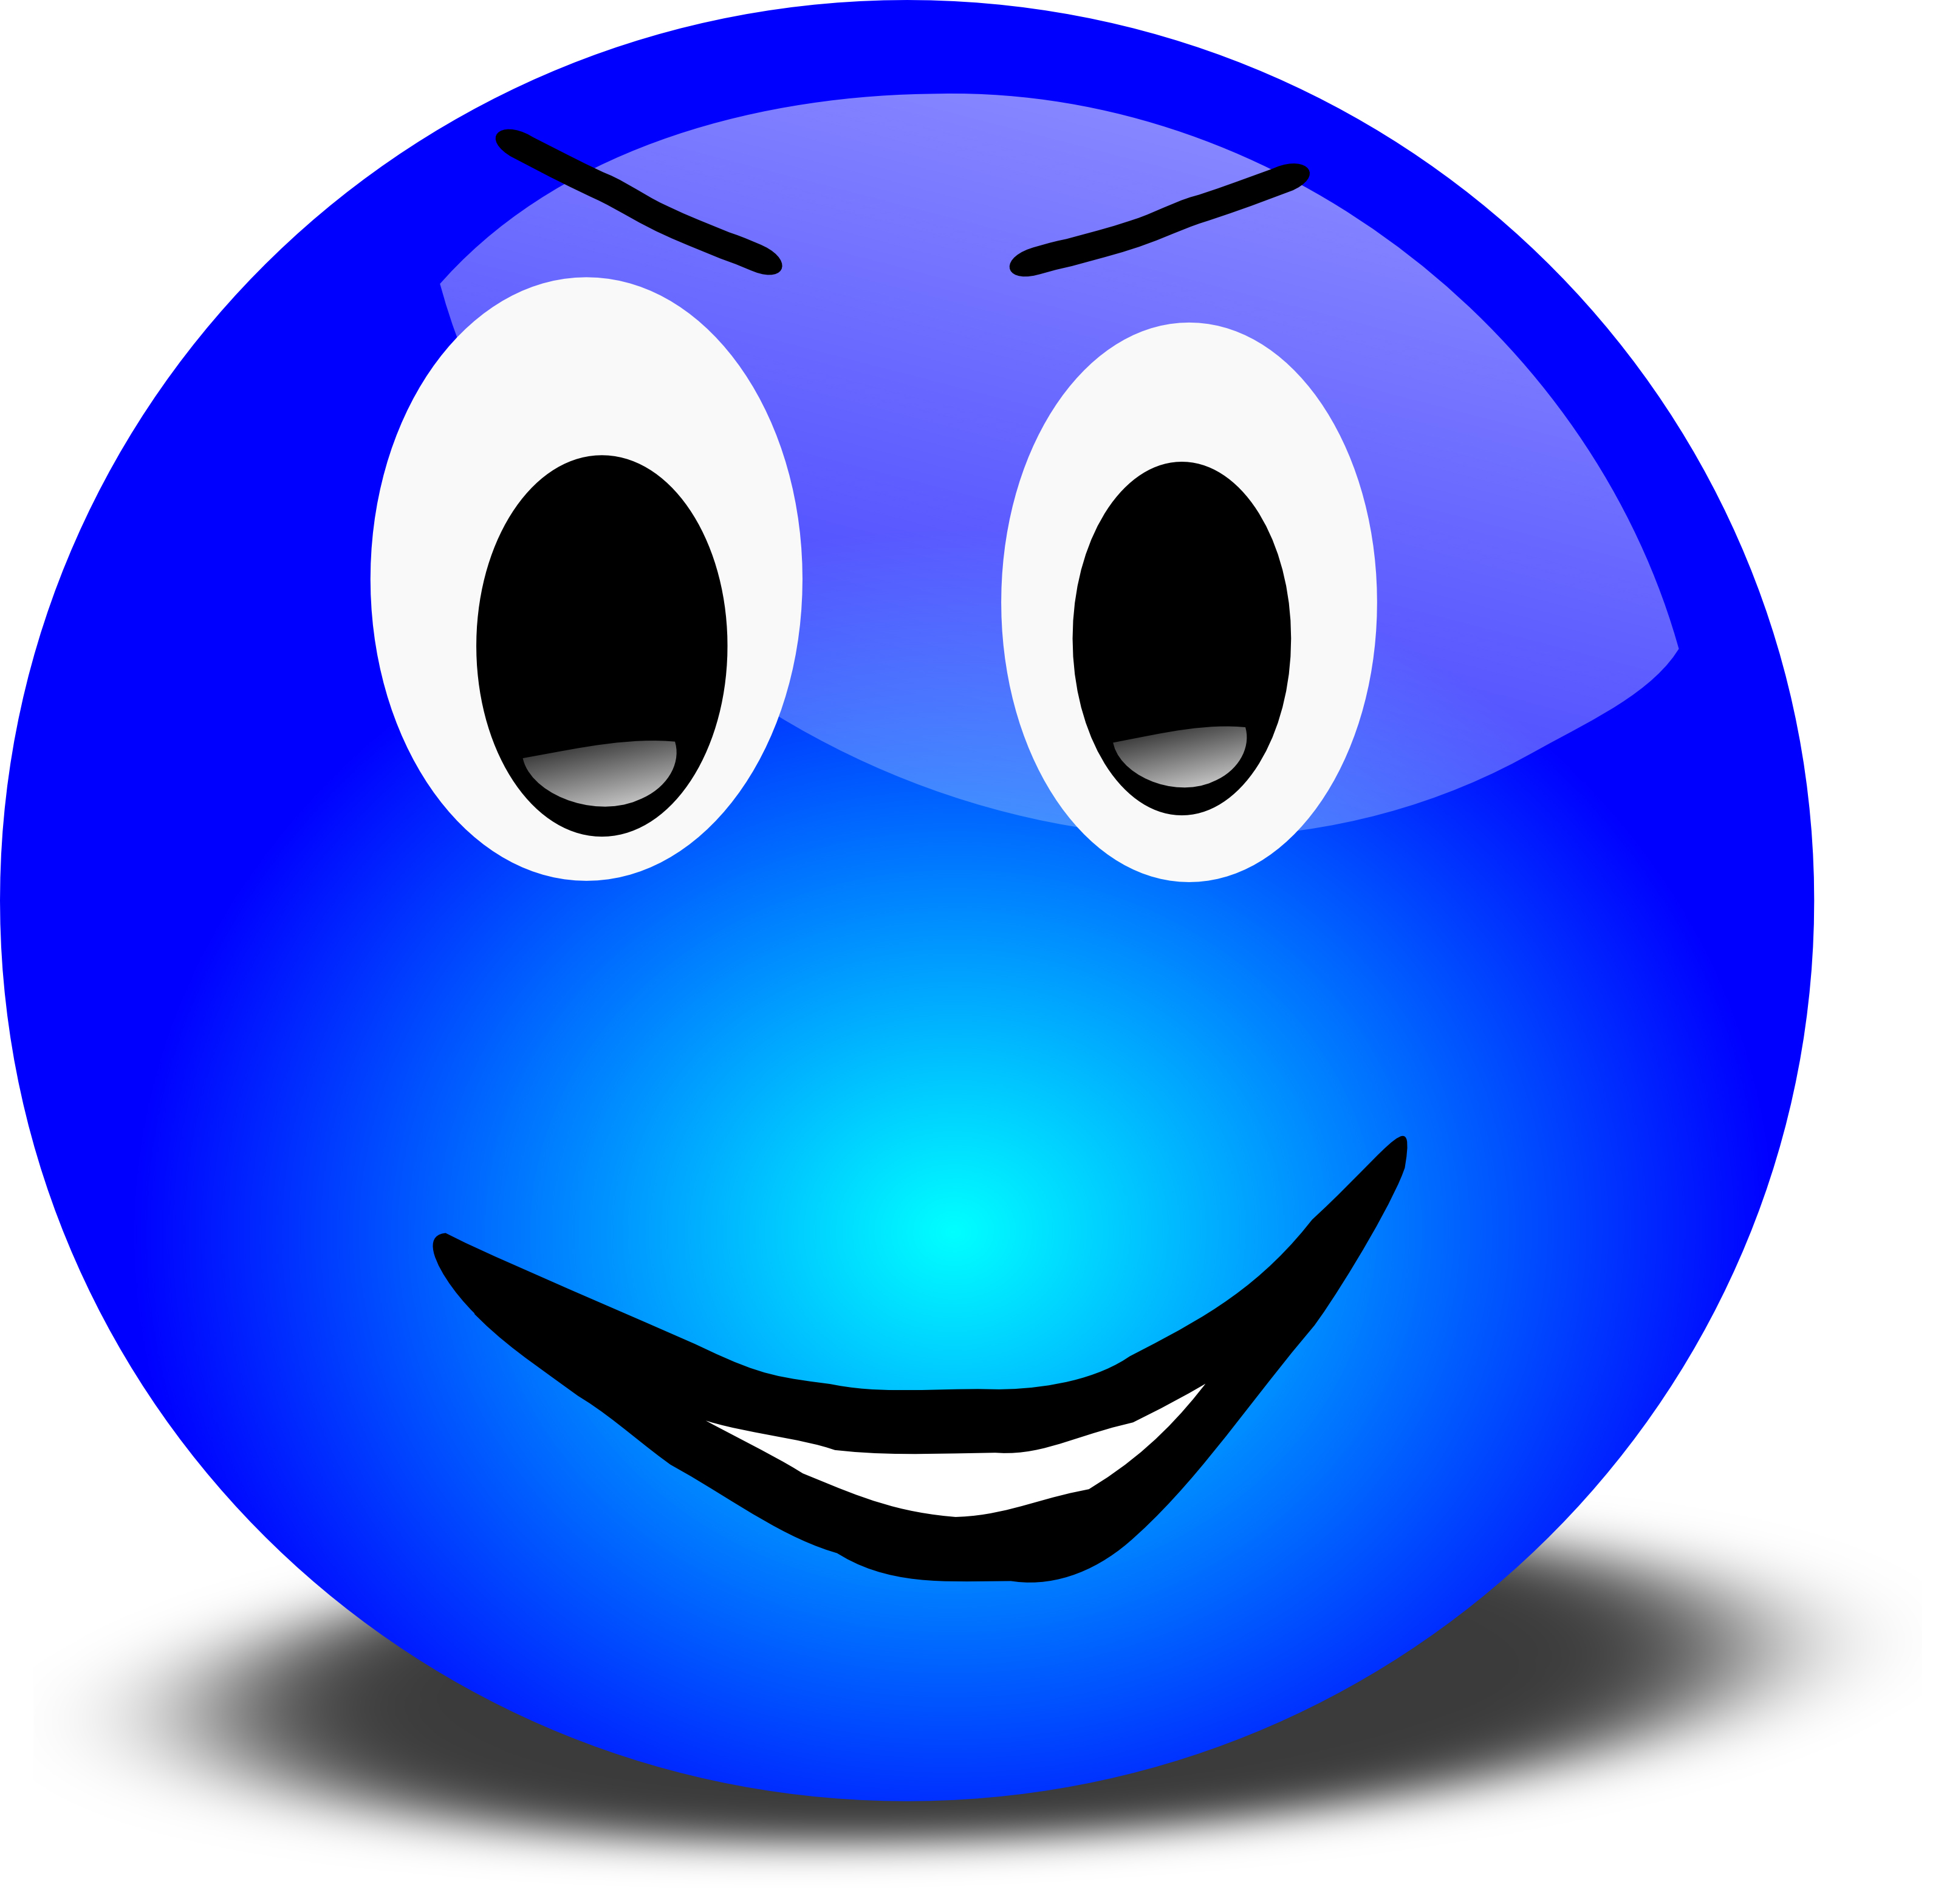 Free PNG HD Smiley Face Thumbs Up - 123397